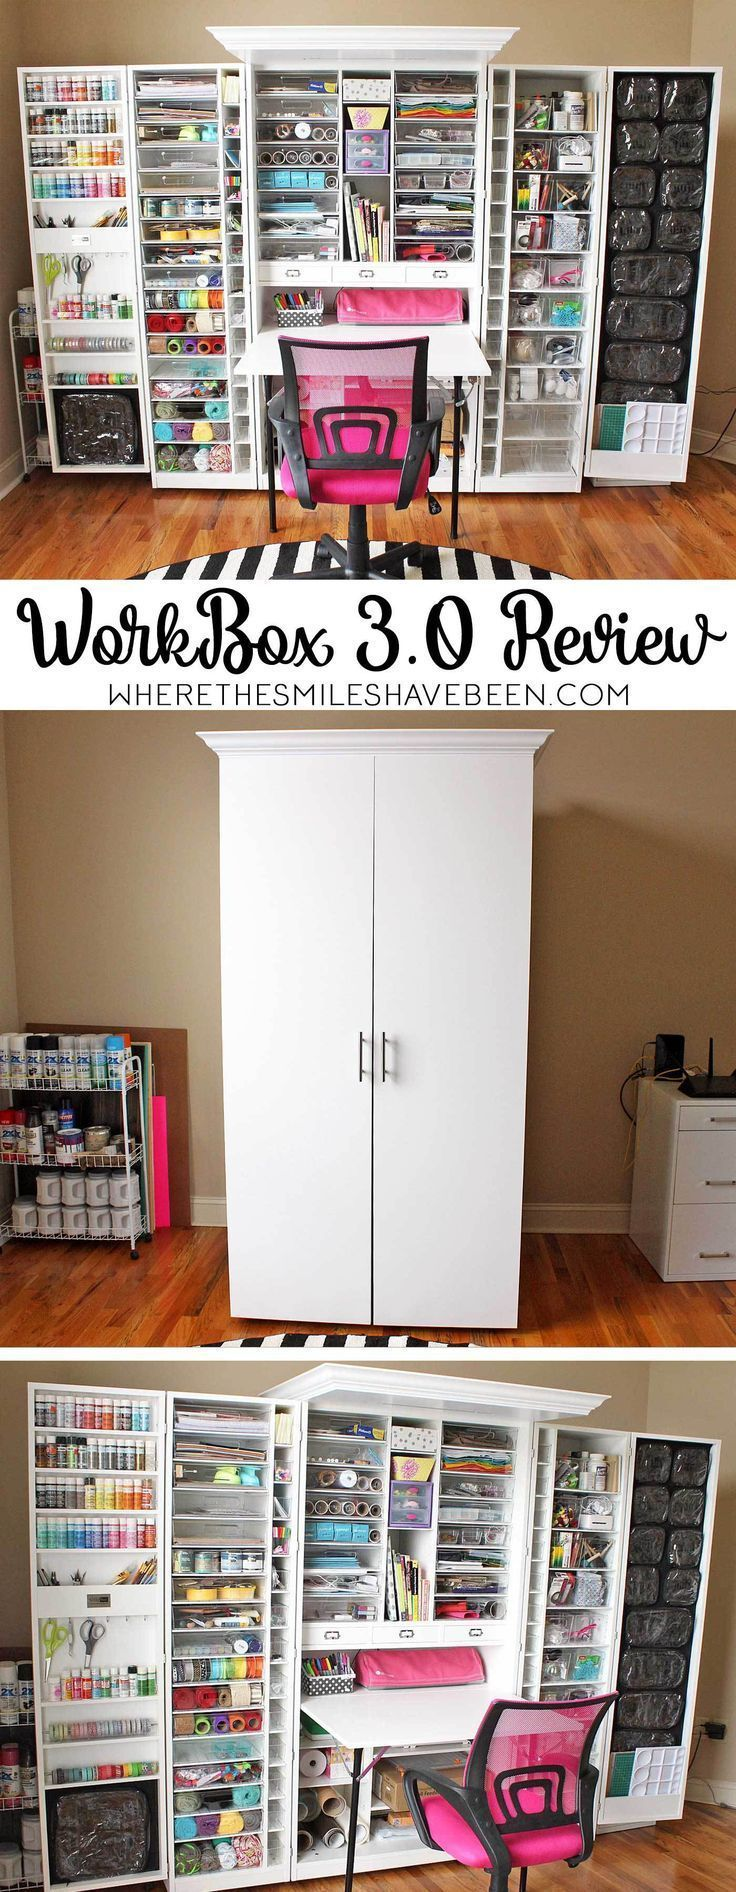 Thinking of buying a WorkBox 3.0 to store all of your craft supplies? Here's what you need to know before adding one to your craft room! My WorkBox 3.0 Review: The Good, The Bad, & The WTF?! | Where The Smiles Have Been #sew room My WorkBox 3.0 Review: The Good, The Bad, & The WTF?! #bloggonh Thinking of buying a WorkBox 3.0 to store all of your craft supplies? Here's what you need to know before adding one to your craft room! My WorkBox 3.0 Review: The Good, The Bad, & The WTF?! | Where The Smi #bloggonh